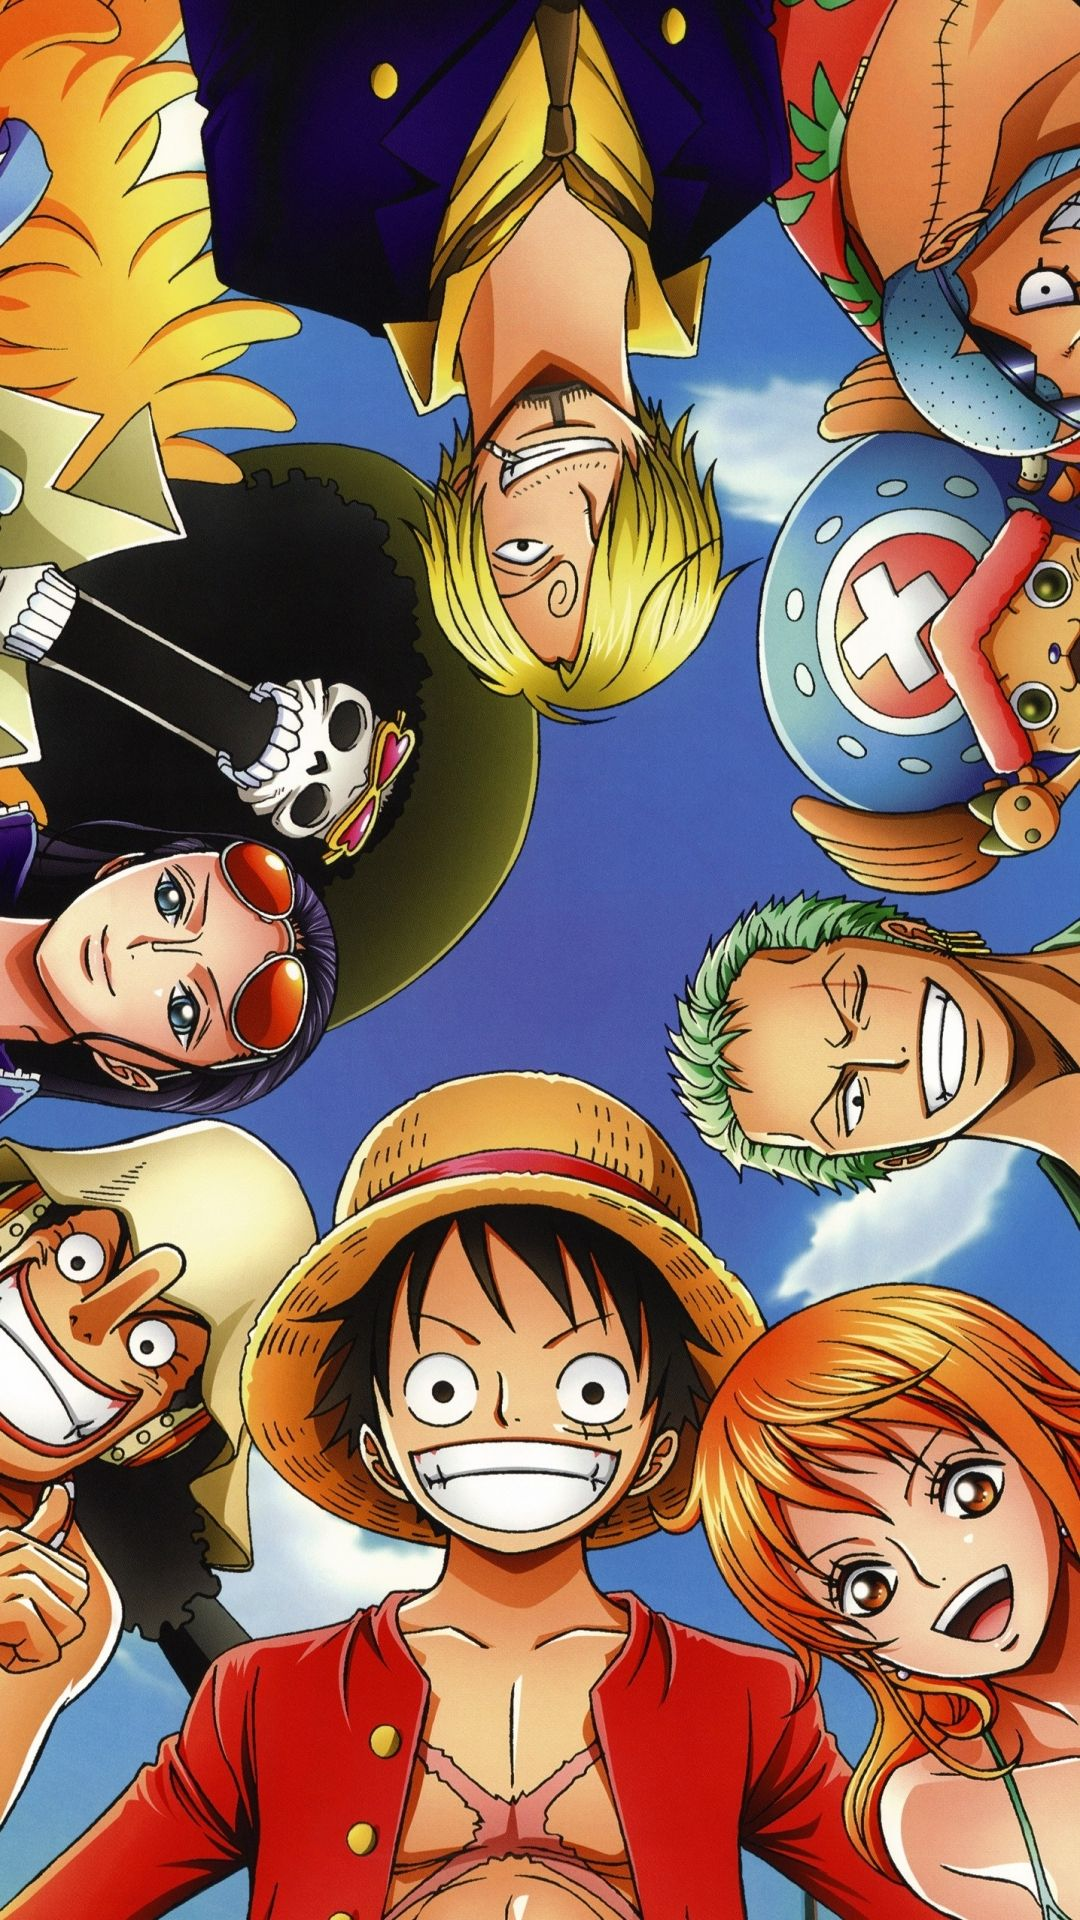 One Piece Iphone Wallpaper Download Free One Piece Wallpaper Iphone One Piece Crew One Piece Anime